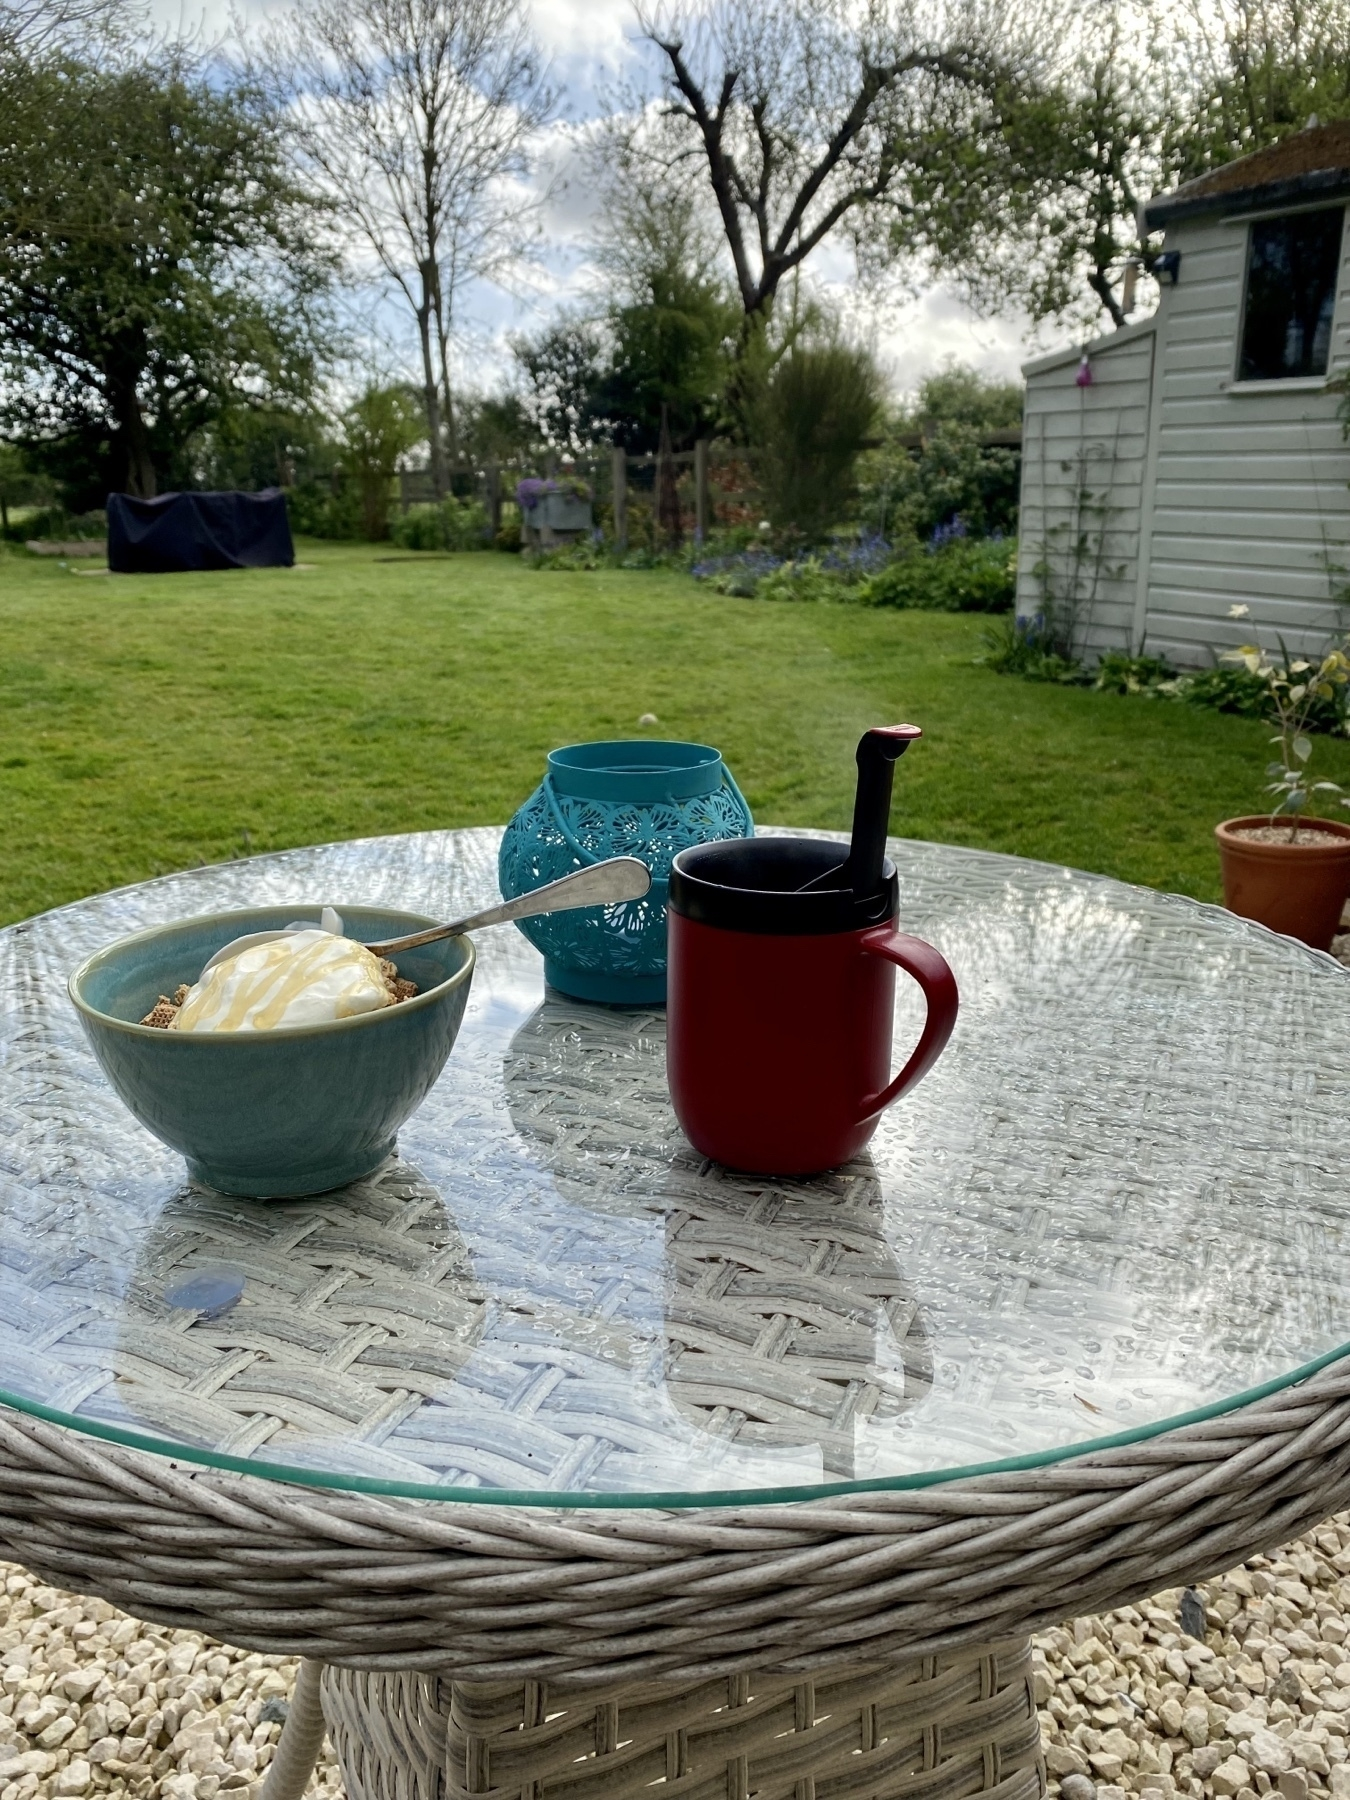 photo of breakfast on a patio